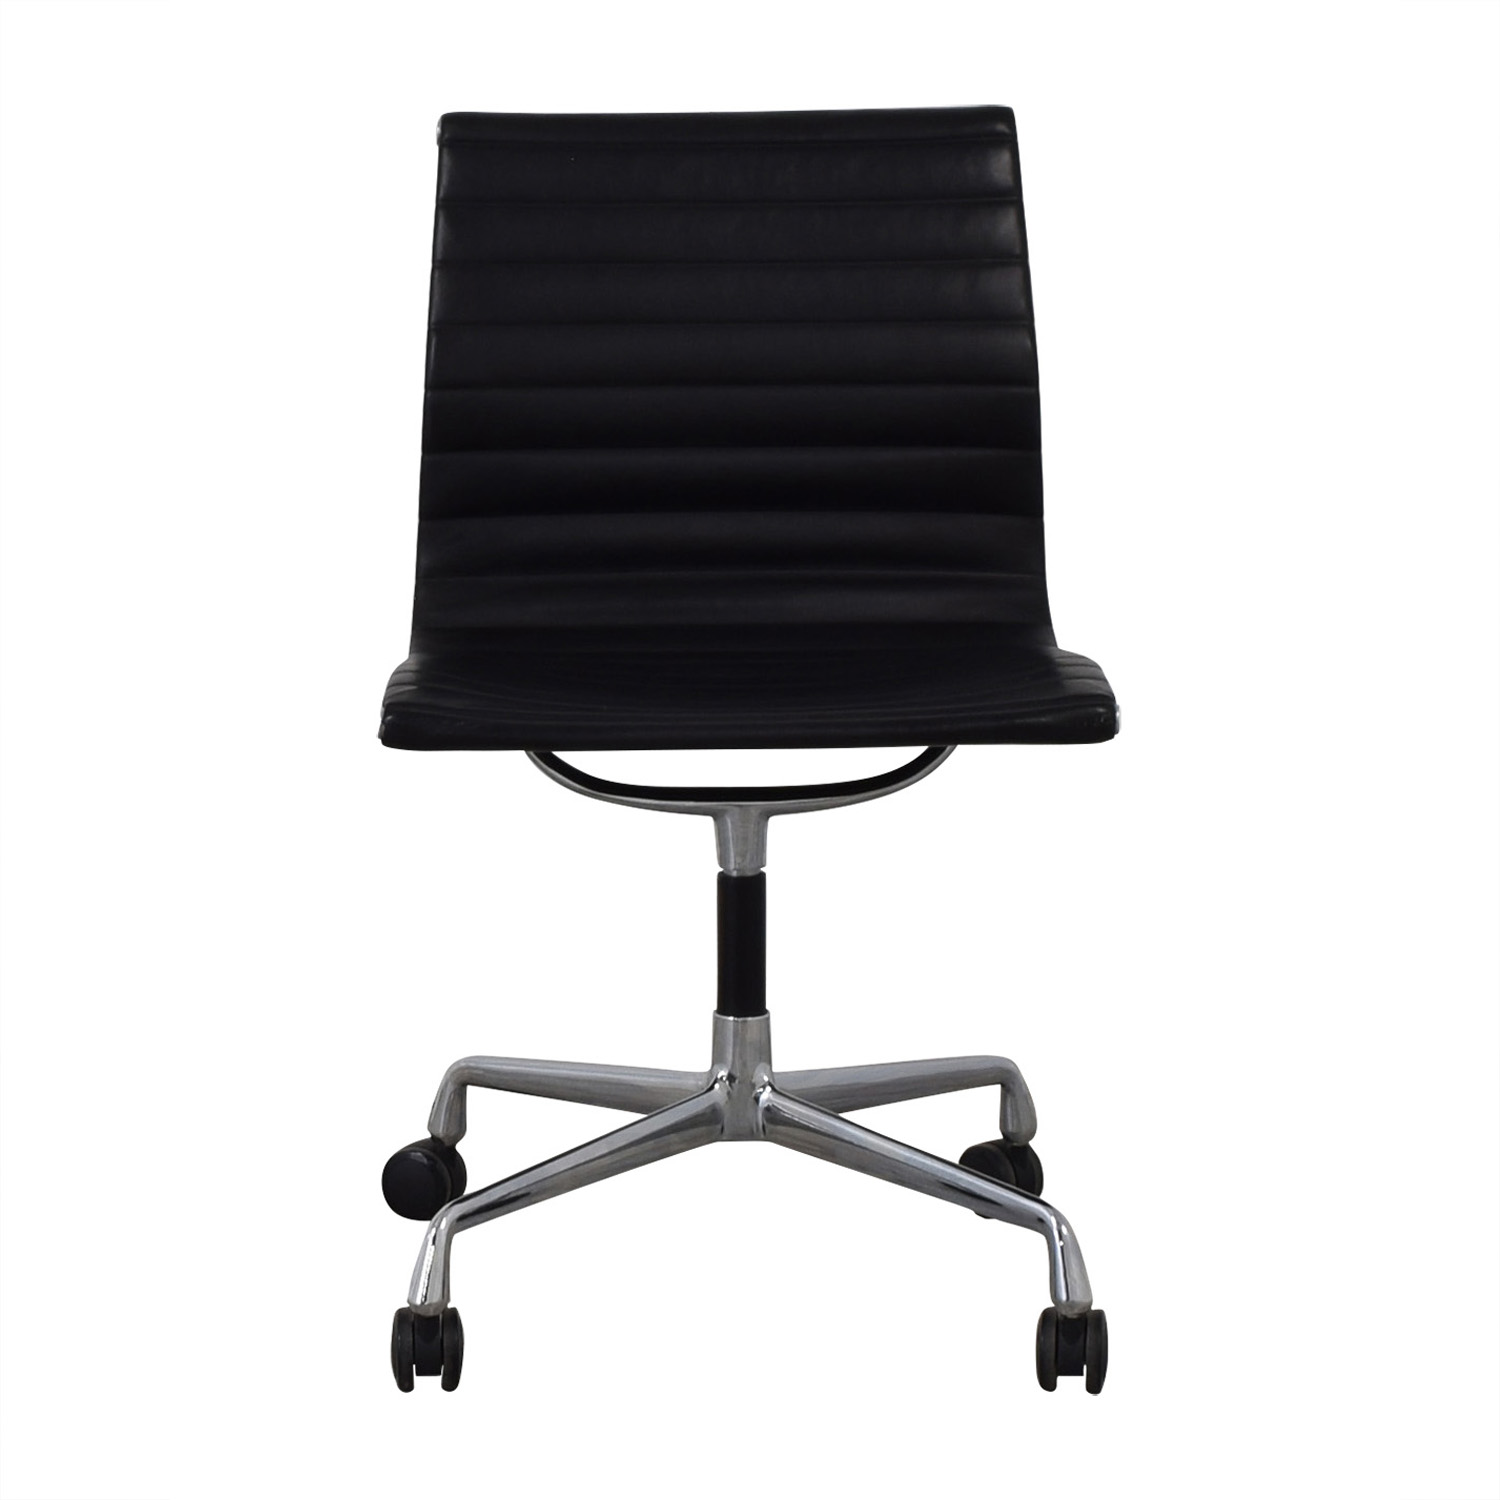 shop Rove Concepts Eames-Style Office Chair Rove Concepts